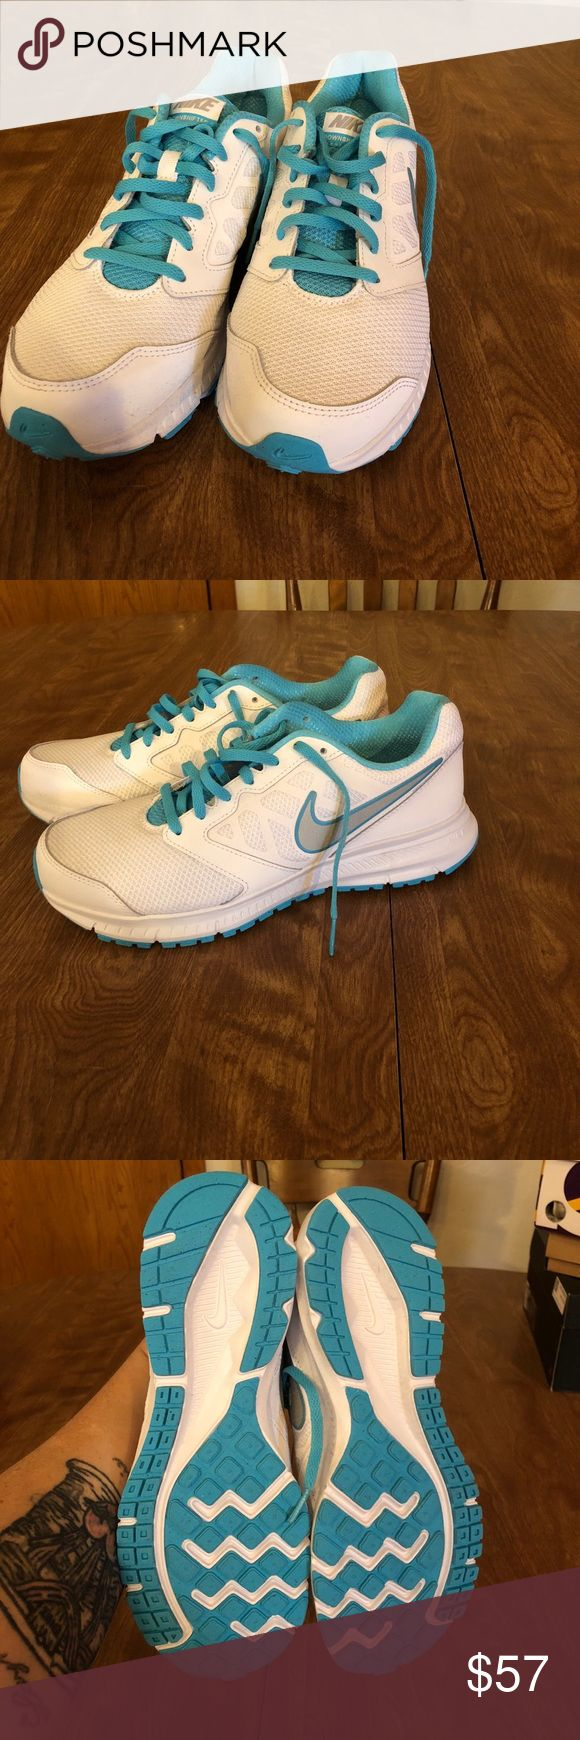 Women's Nike Running Shoe. Brand new no box. Size 10. Everything I sell ships within 24 hours. 100% Authentic Nike. Nike Shoes Athletic Shoes